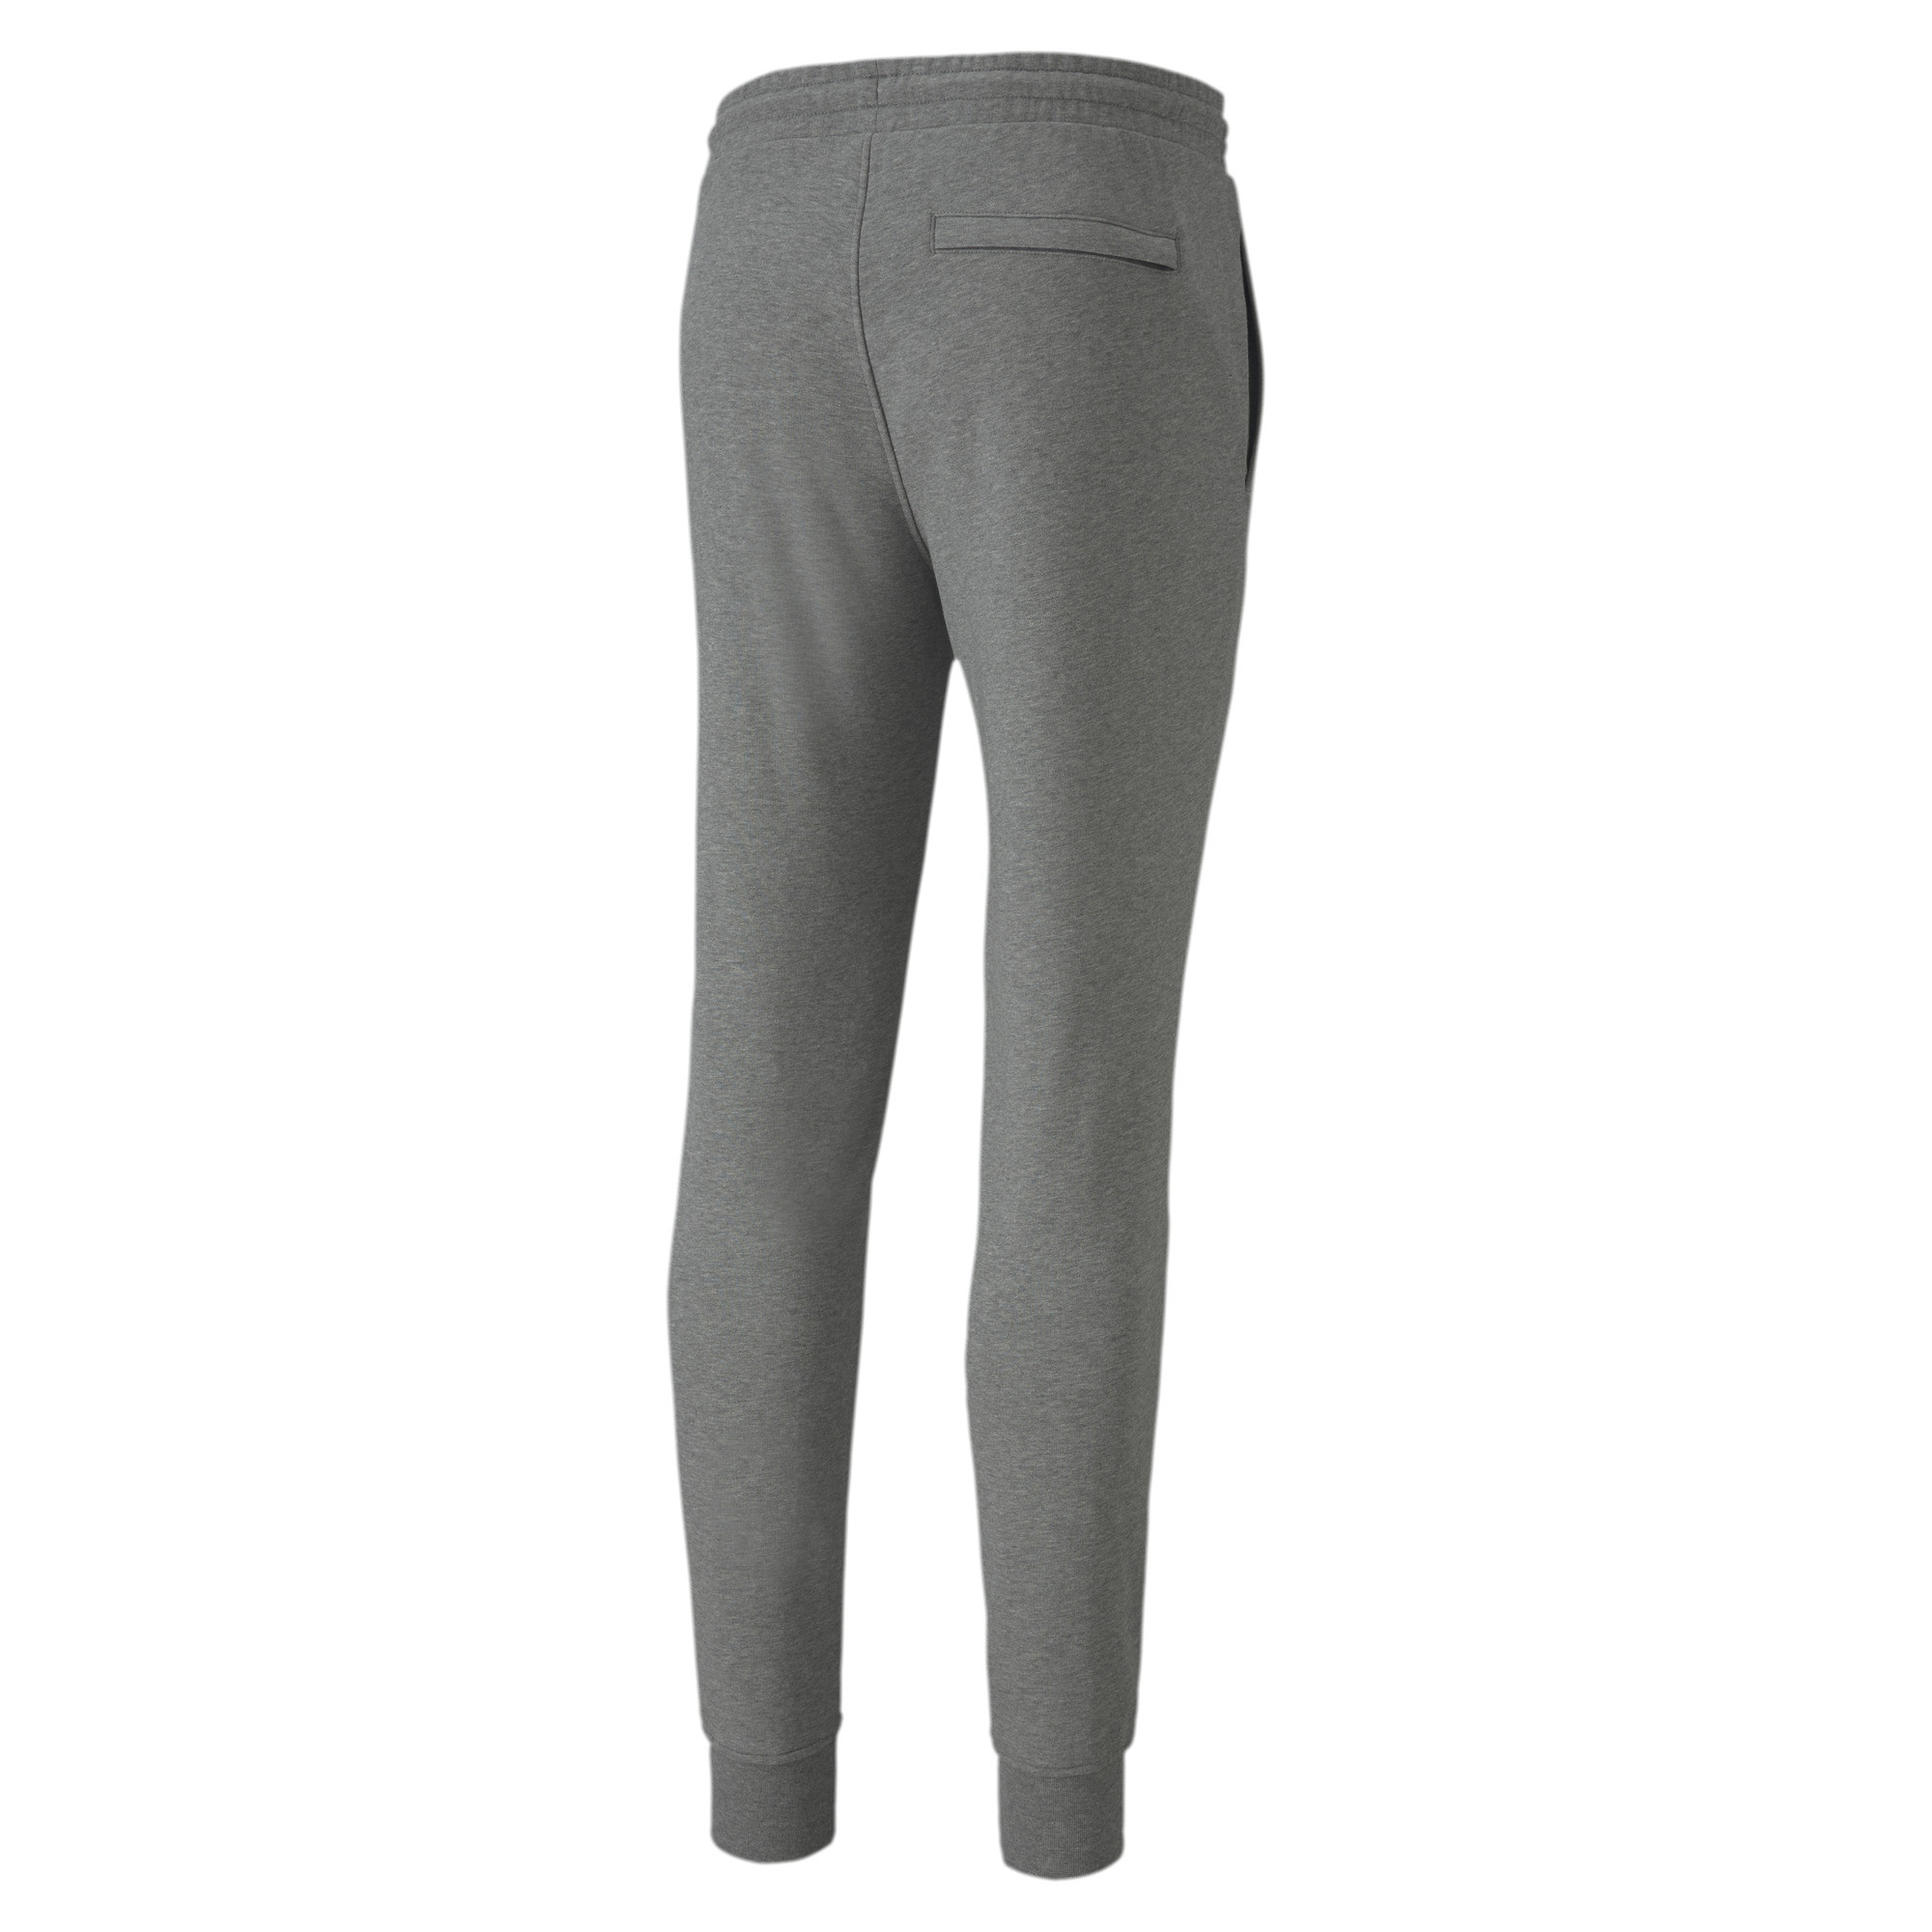 PUMA-Classics-Men-039-s-Cuffed-Sweatpants-Men-Knitted-Pants-Sport-Classics thumbnail 8